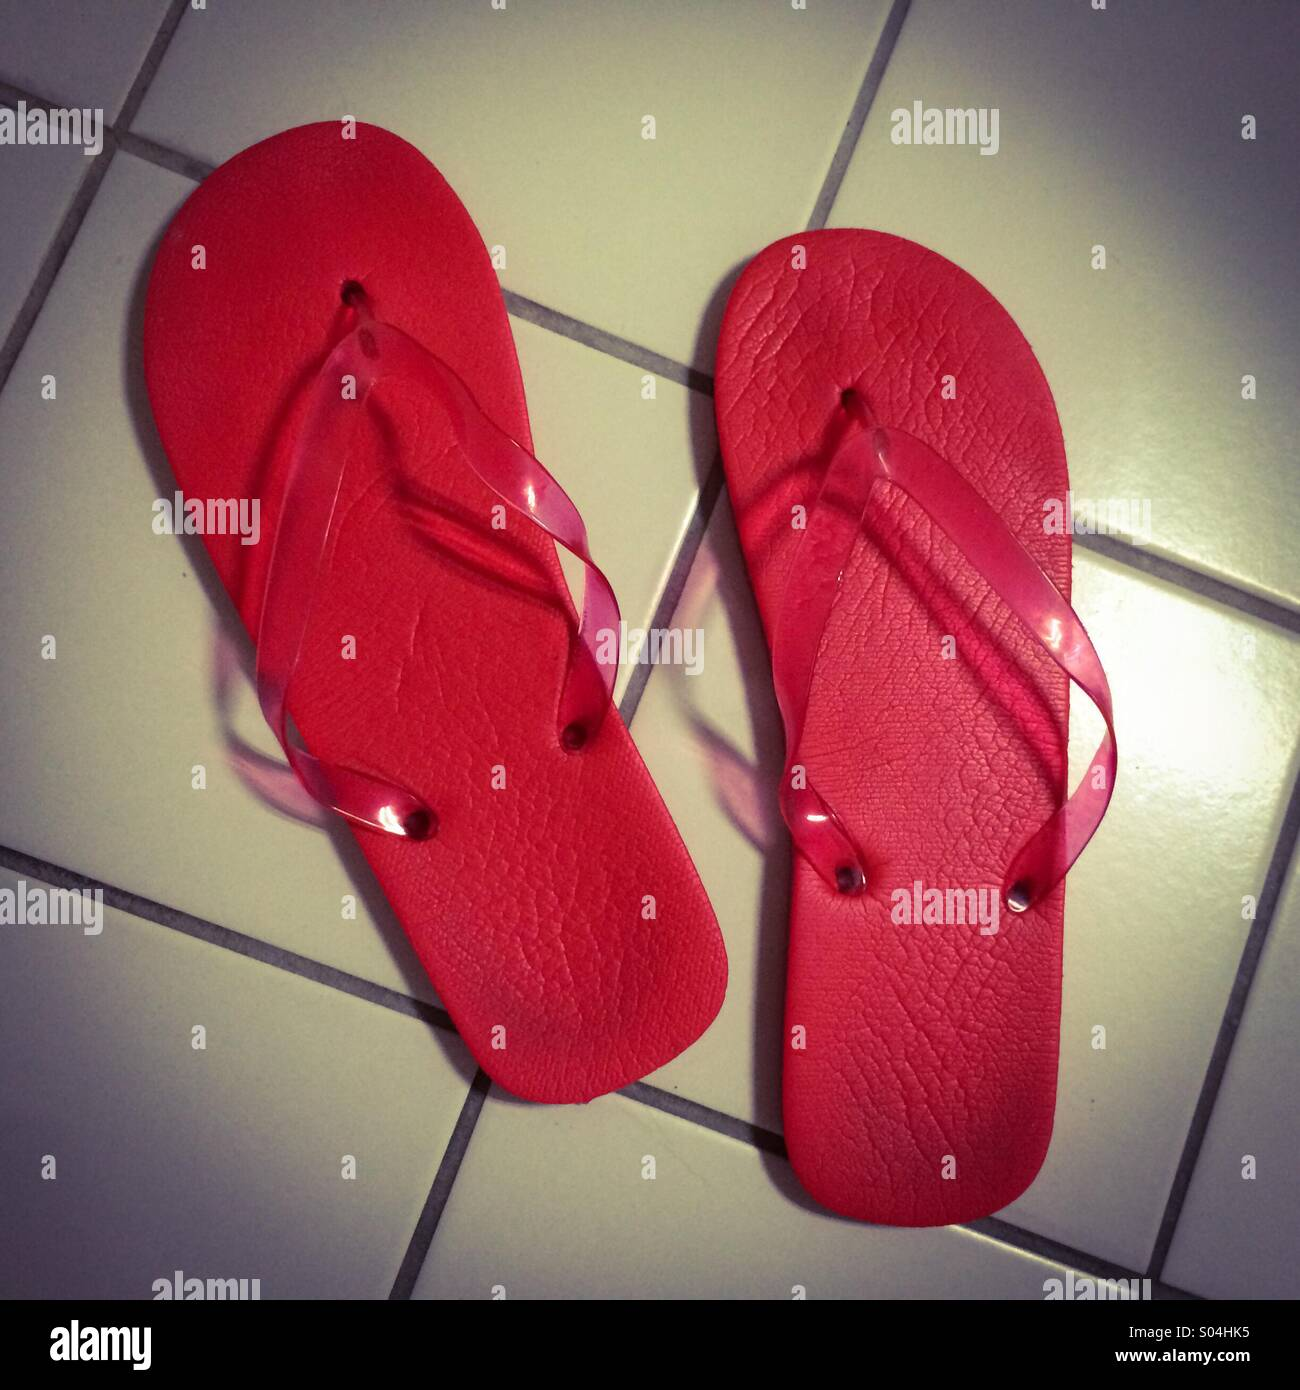 1f740bd93de Red slippers on white tiles Stock Photo  309888297 - Alamy